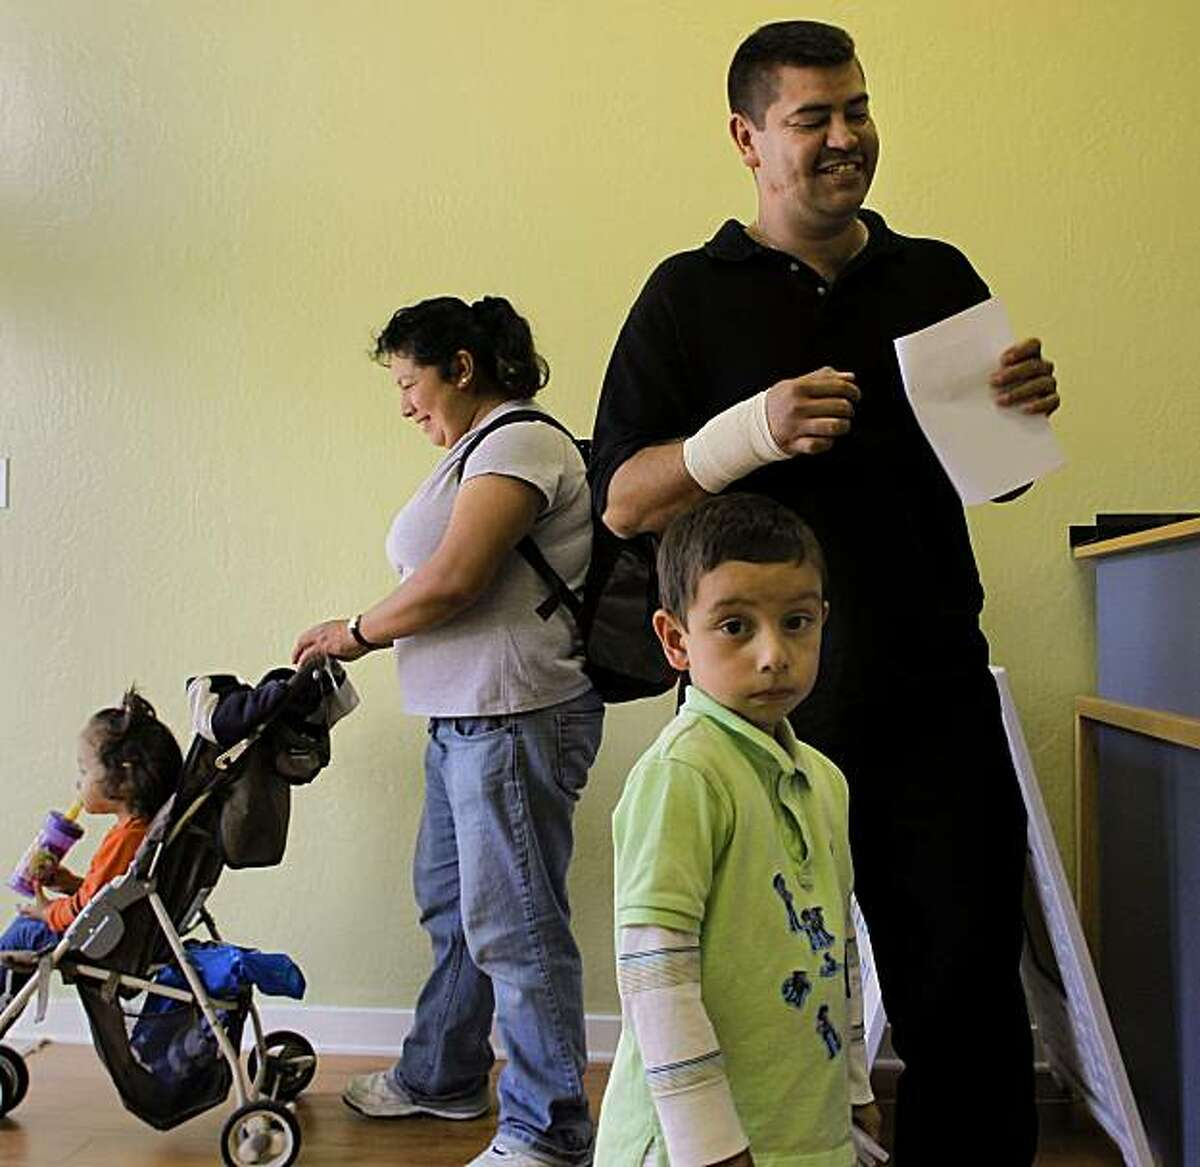 The Lopez family, Rosaure, 2, Aurelia, Sergio, 4, and Juan, who was in for a wrist injury, seeking medical attention at Clinic By The Bay, on Thursday Nov. 4, 2010 in San Francisco, Calif. The first clinic in the Bay Area and only the second in California that is staffed by retired and volunteer doctors and nurses.